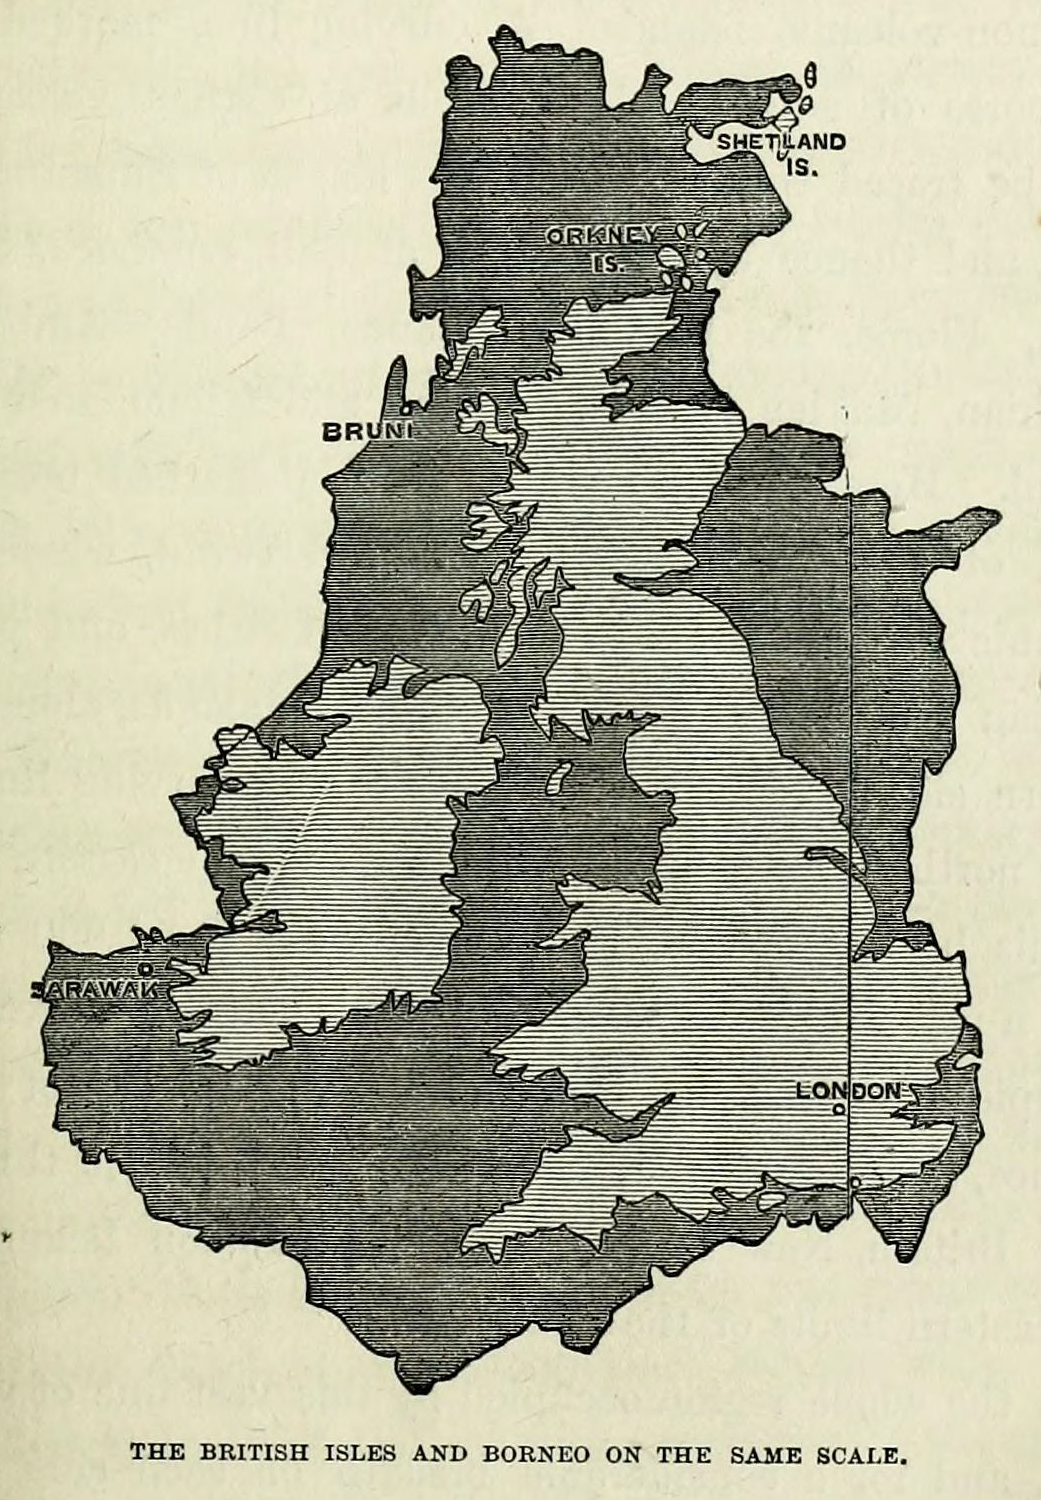 Ch 4 Borneo and British Isles (from BHL)